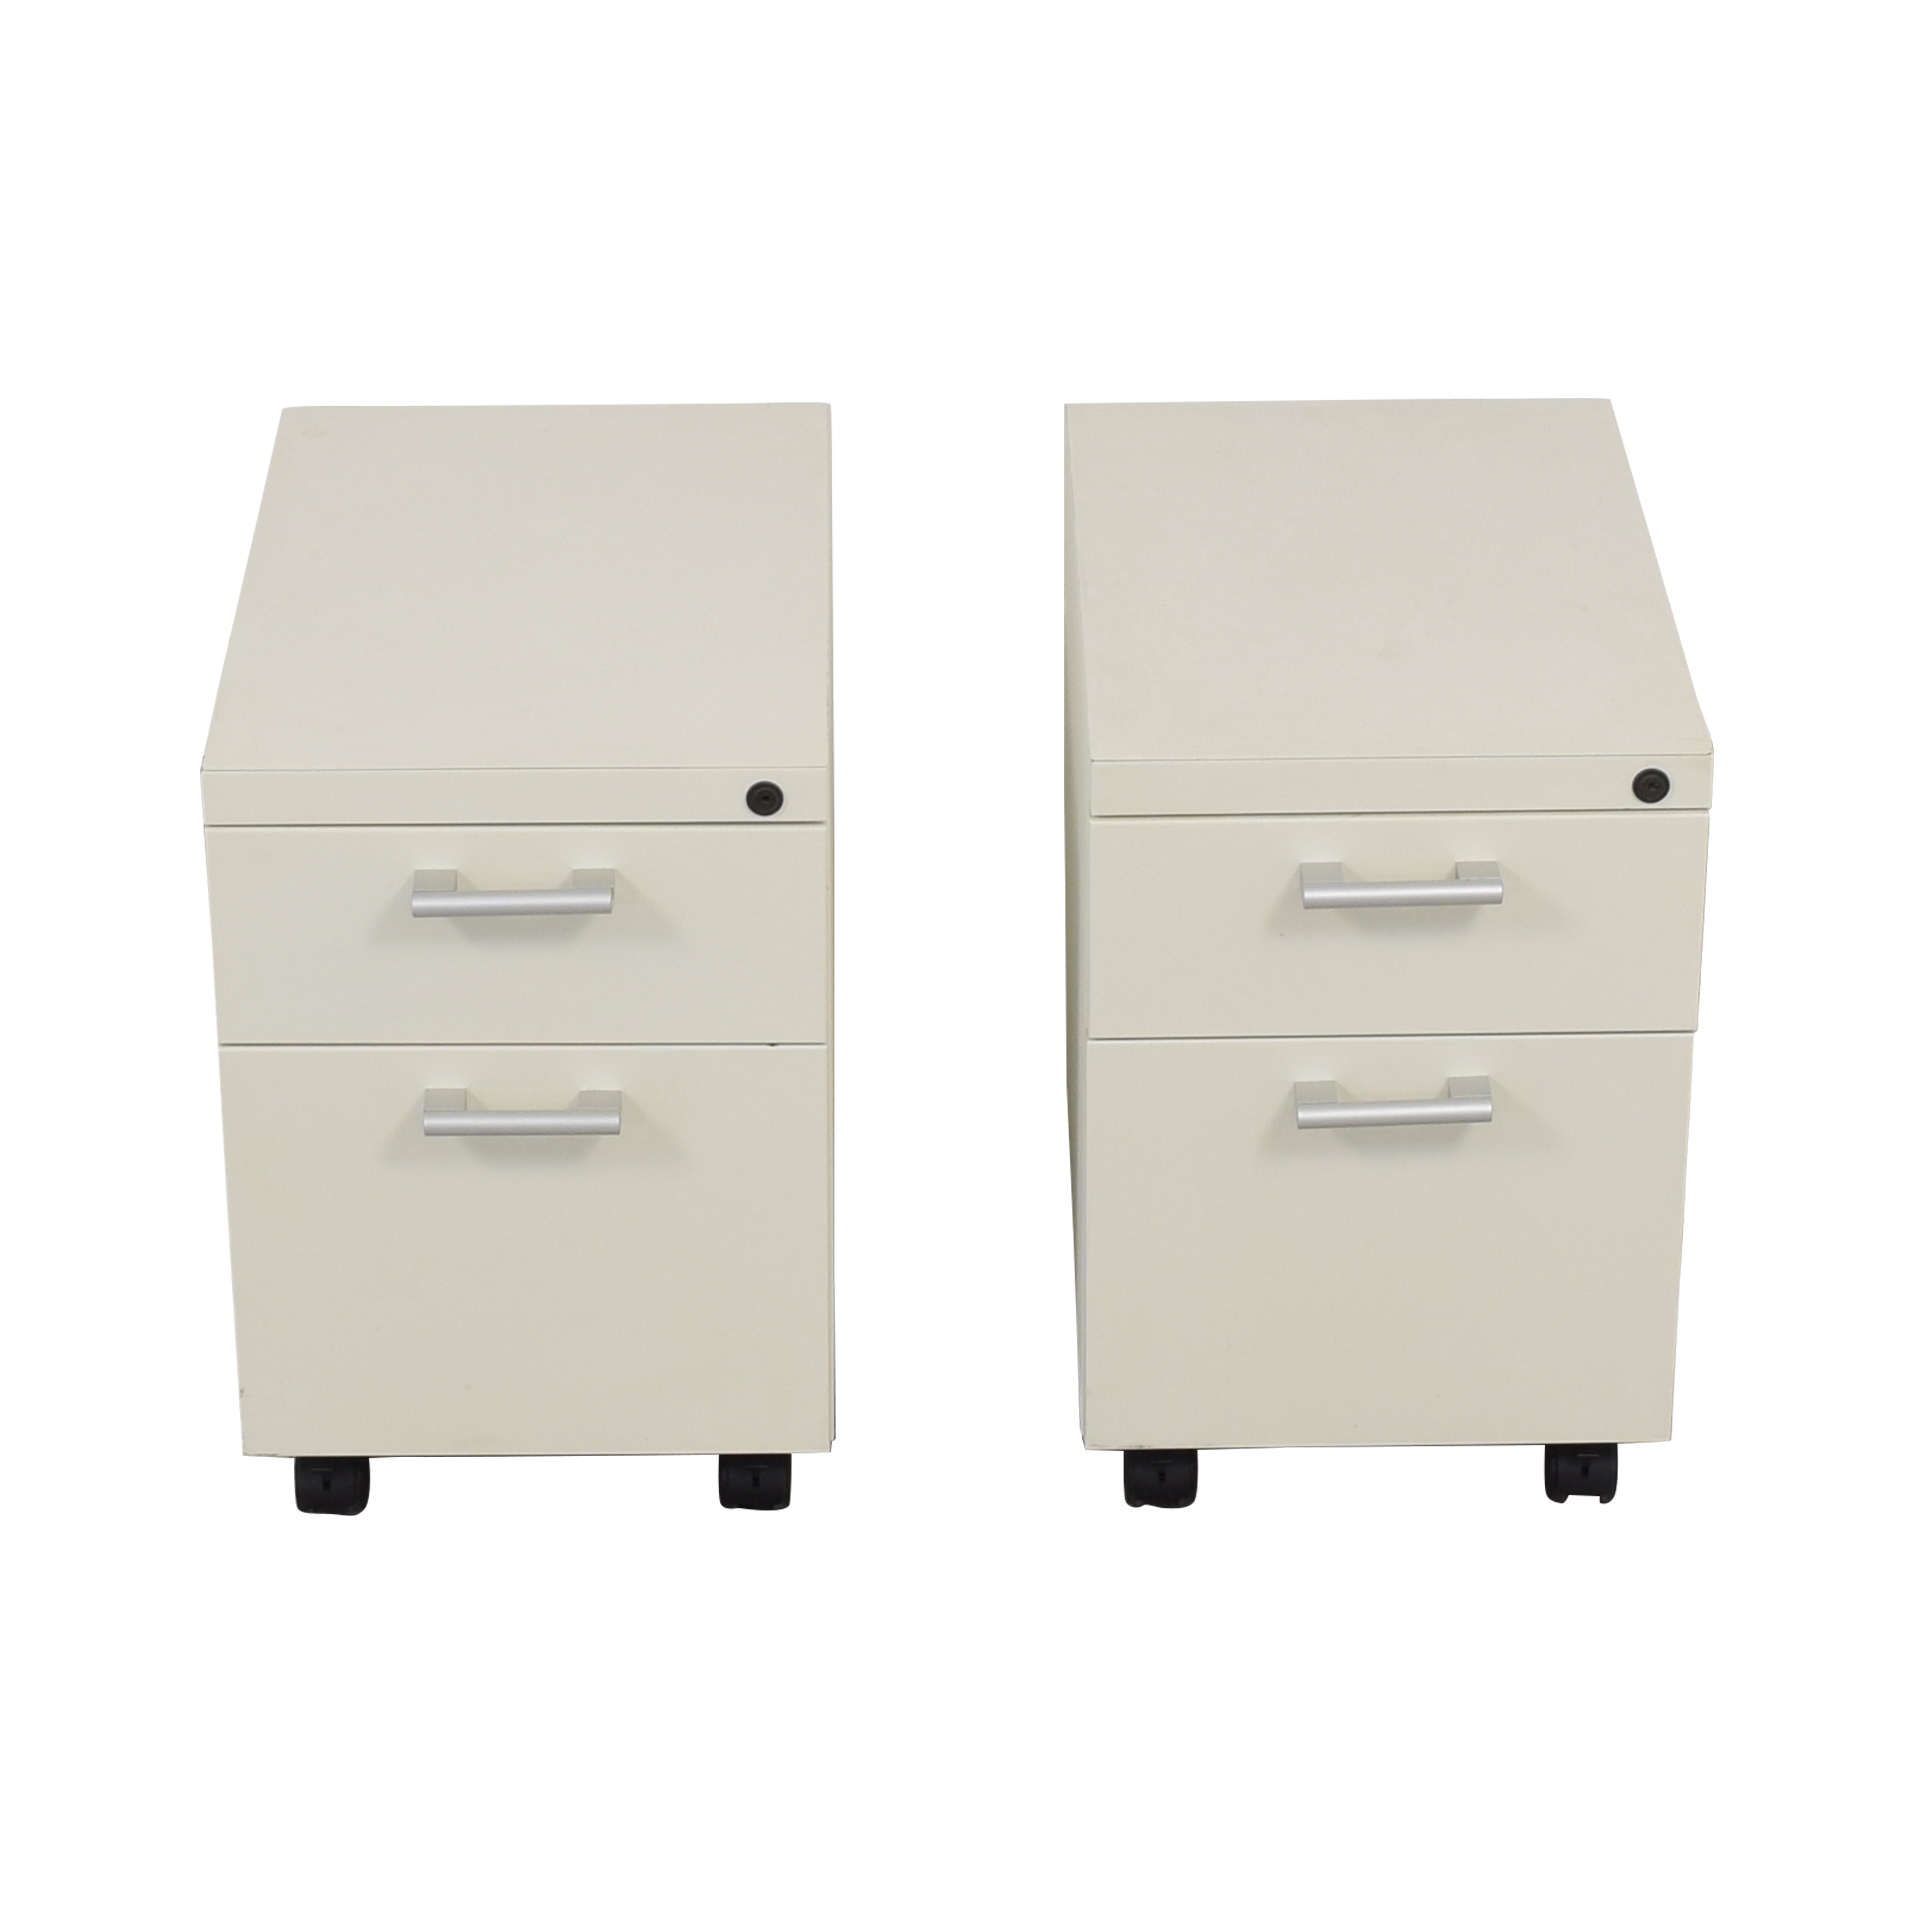 Office Depot Office Depot Rolling Filing Cabinets for sale